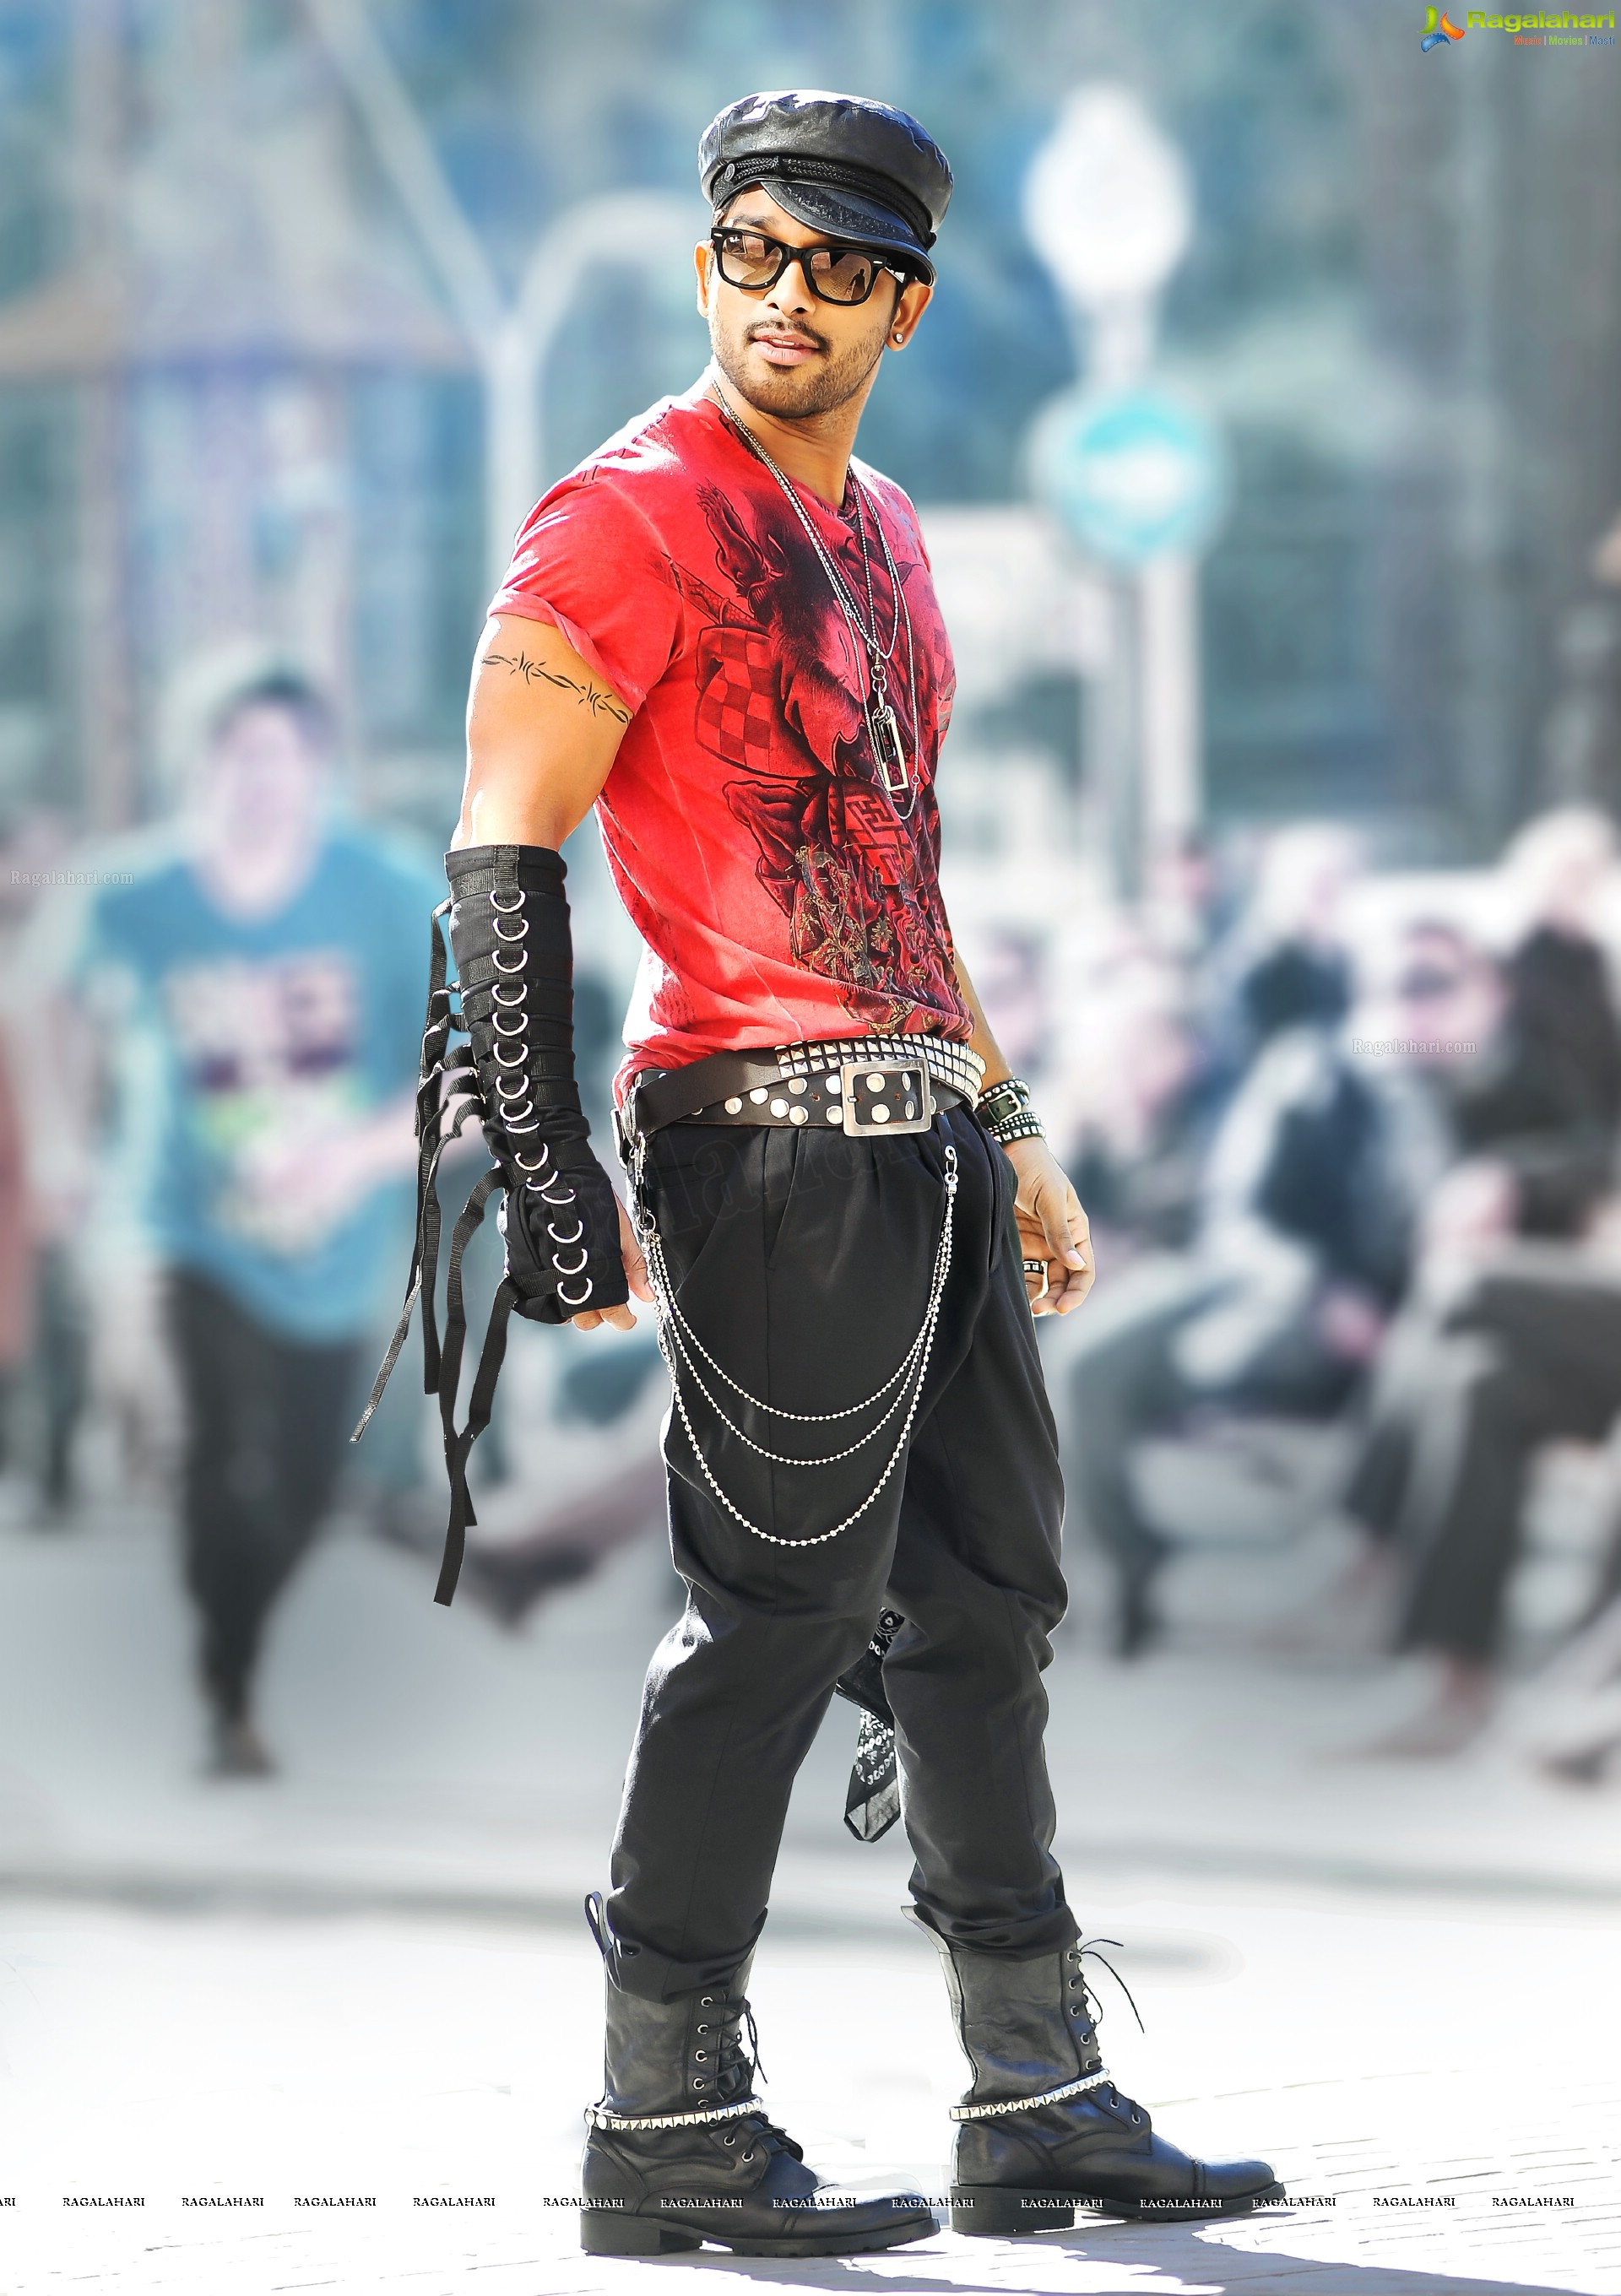 allu arjun (hd) image 1 | beautiful tollywood actress images,telugu